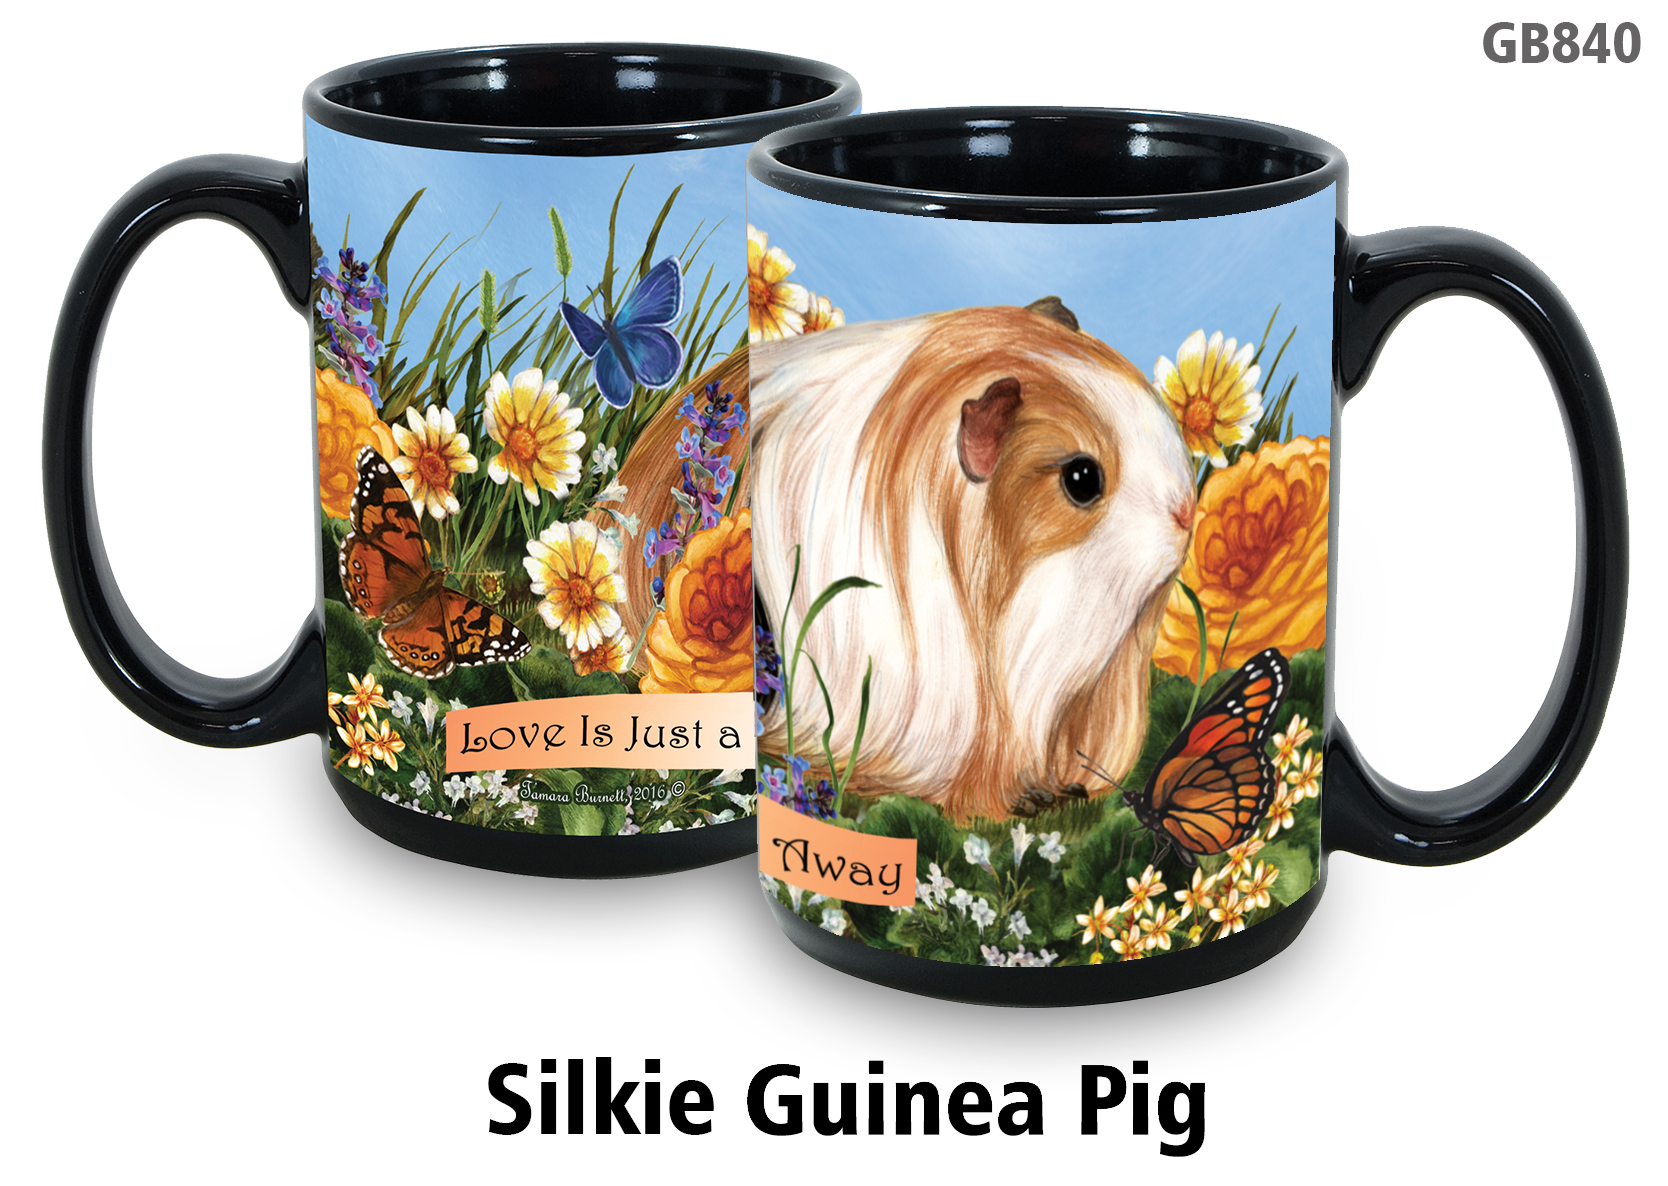 Guinea Pig Silkie - Garden Party Fun Mug 15 oz Image